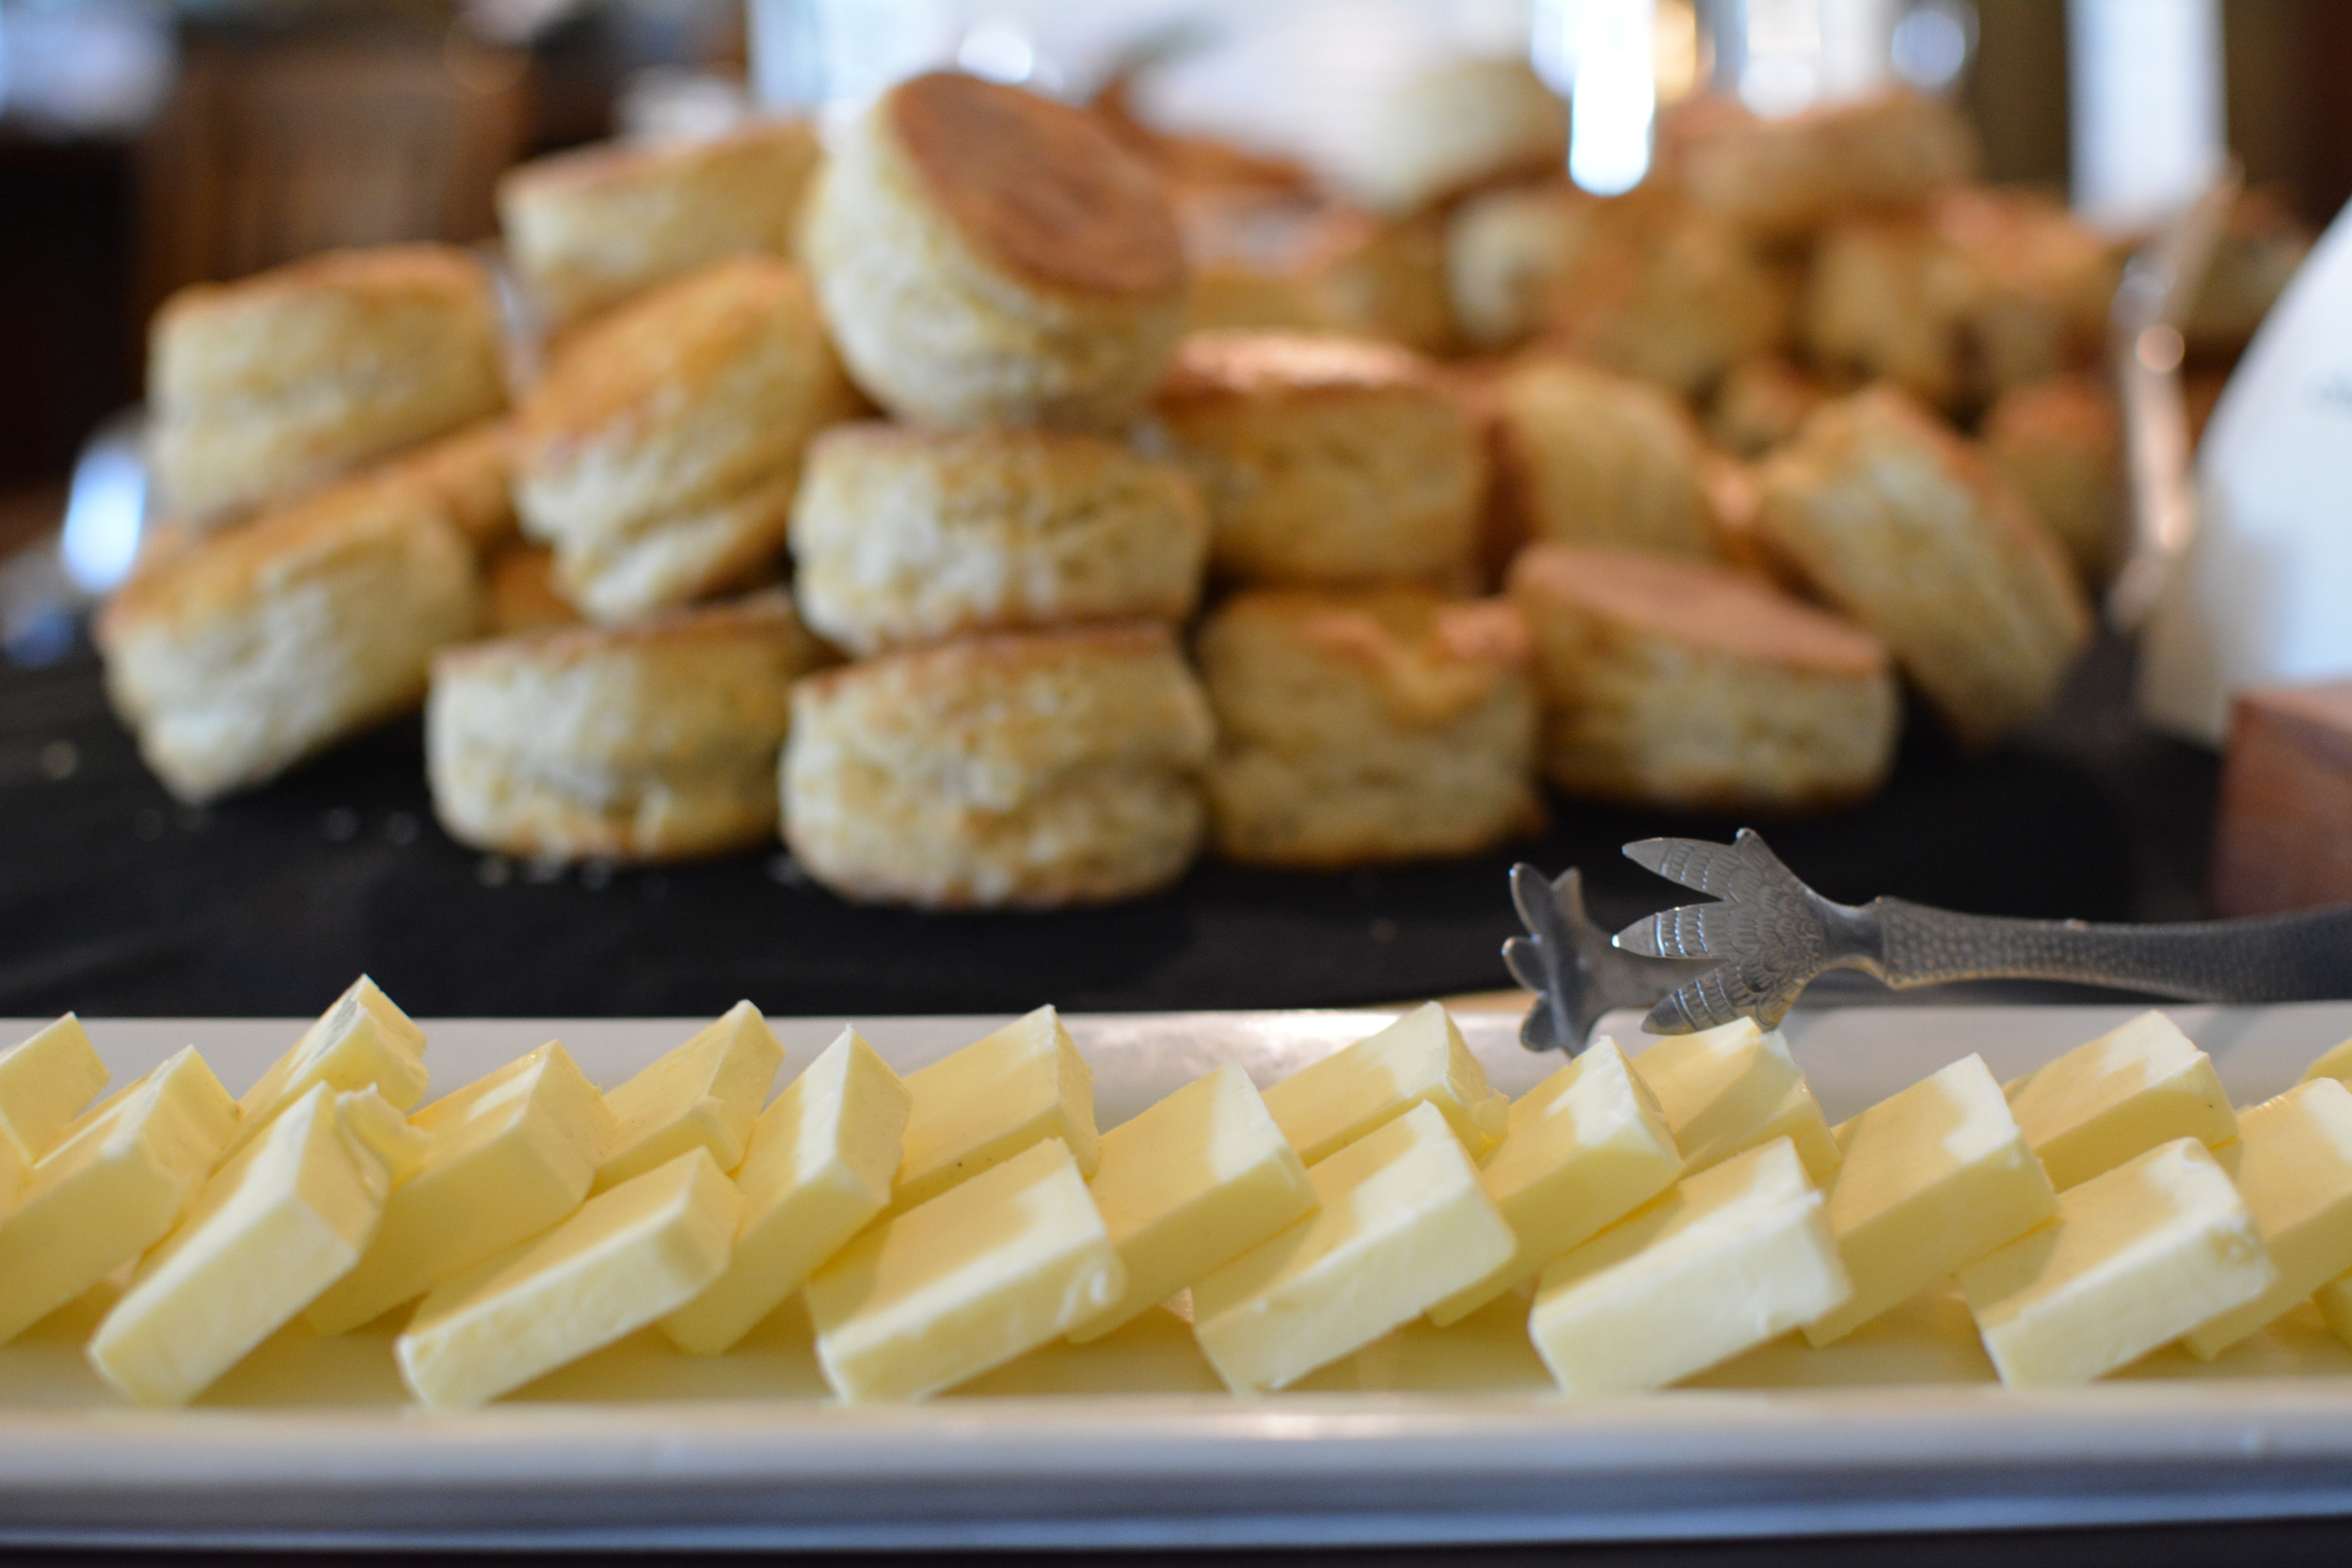 Biscuits at Spinnakers // image by Chantal Ireland